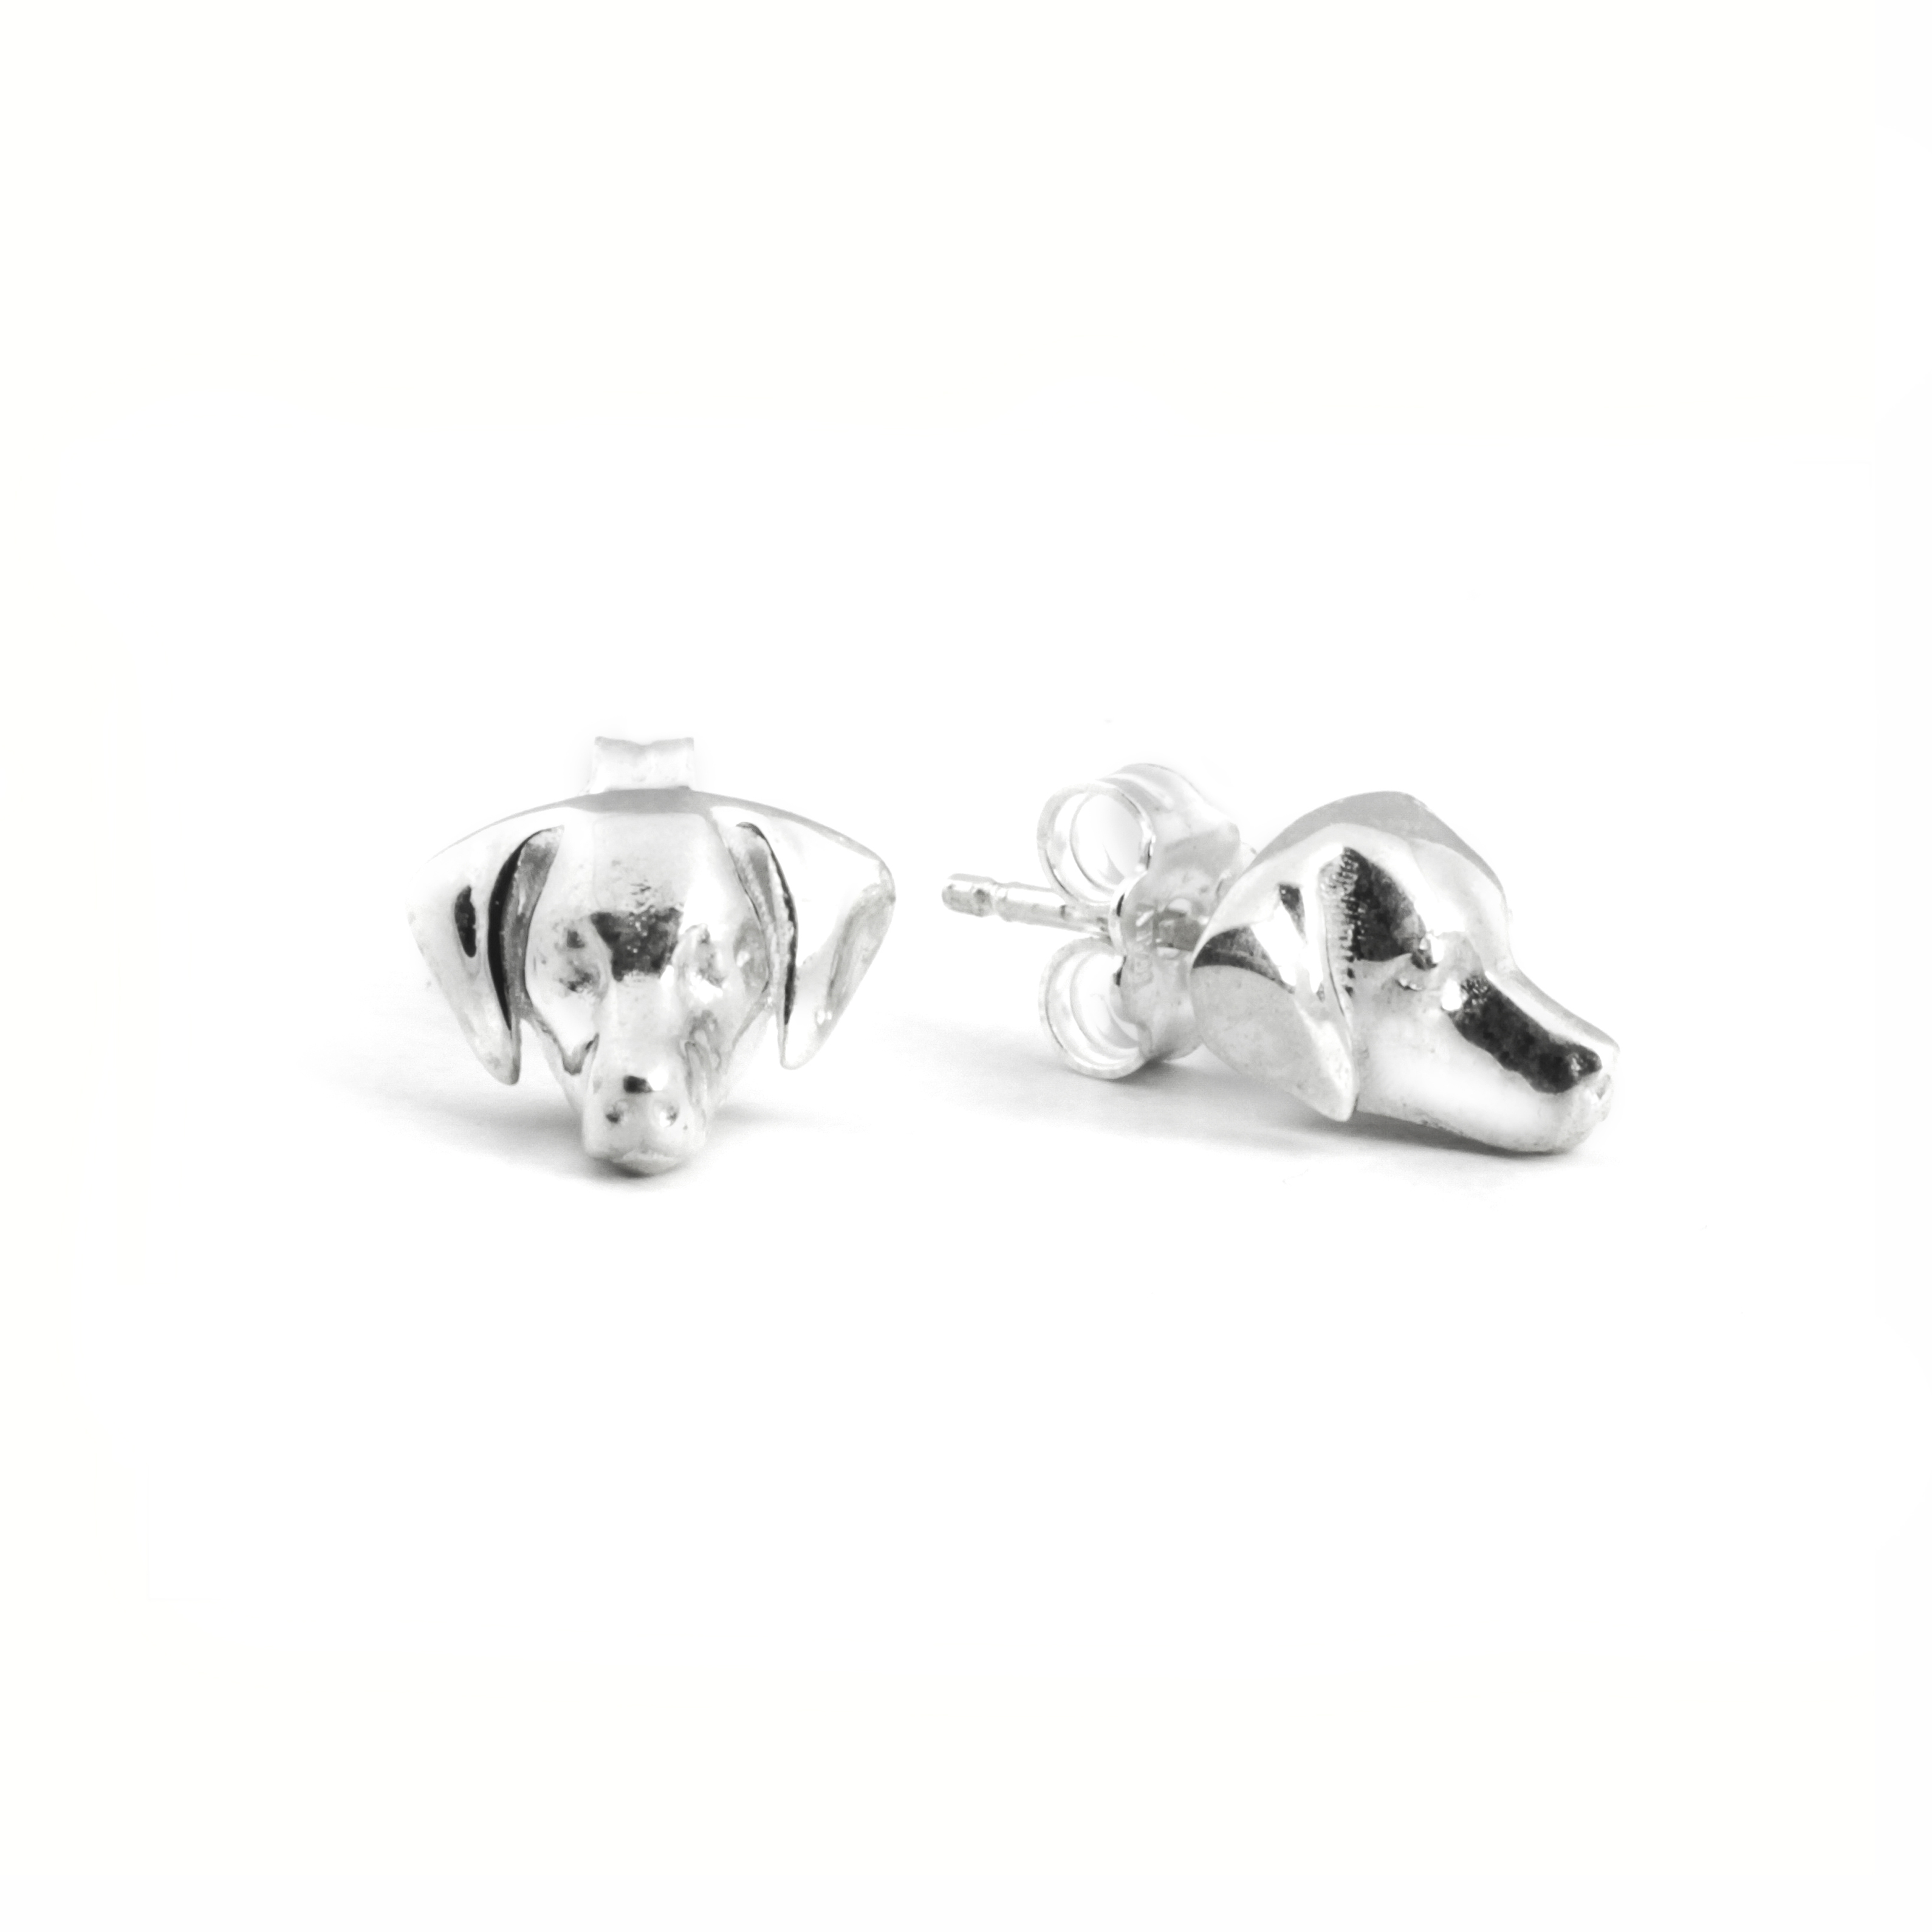 Weimaraner_earrings_silver_HIGH